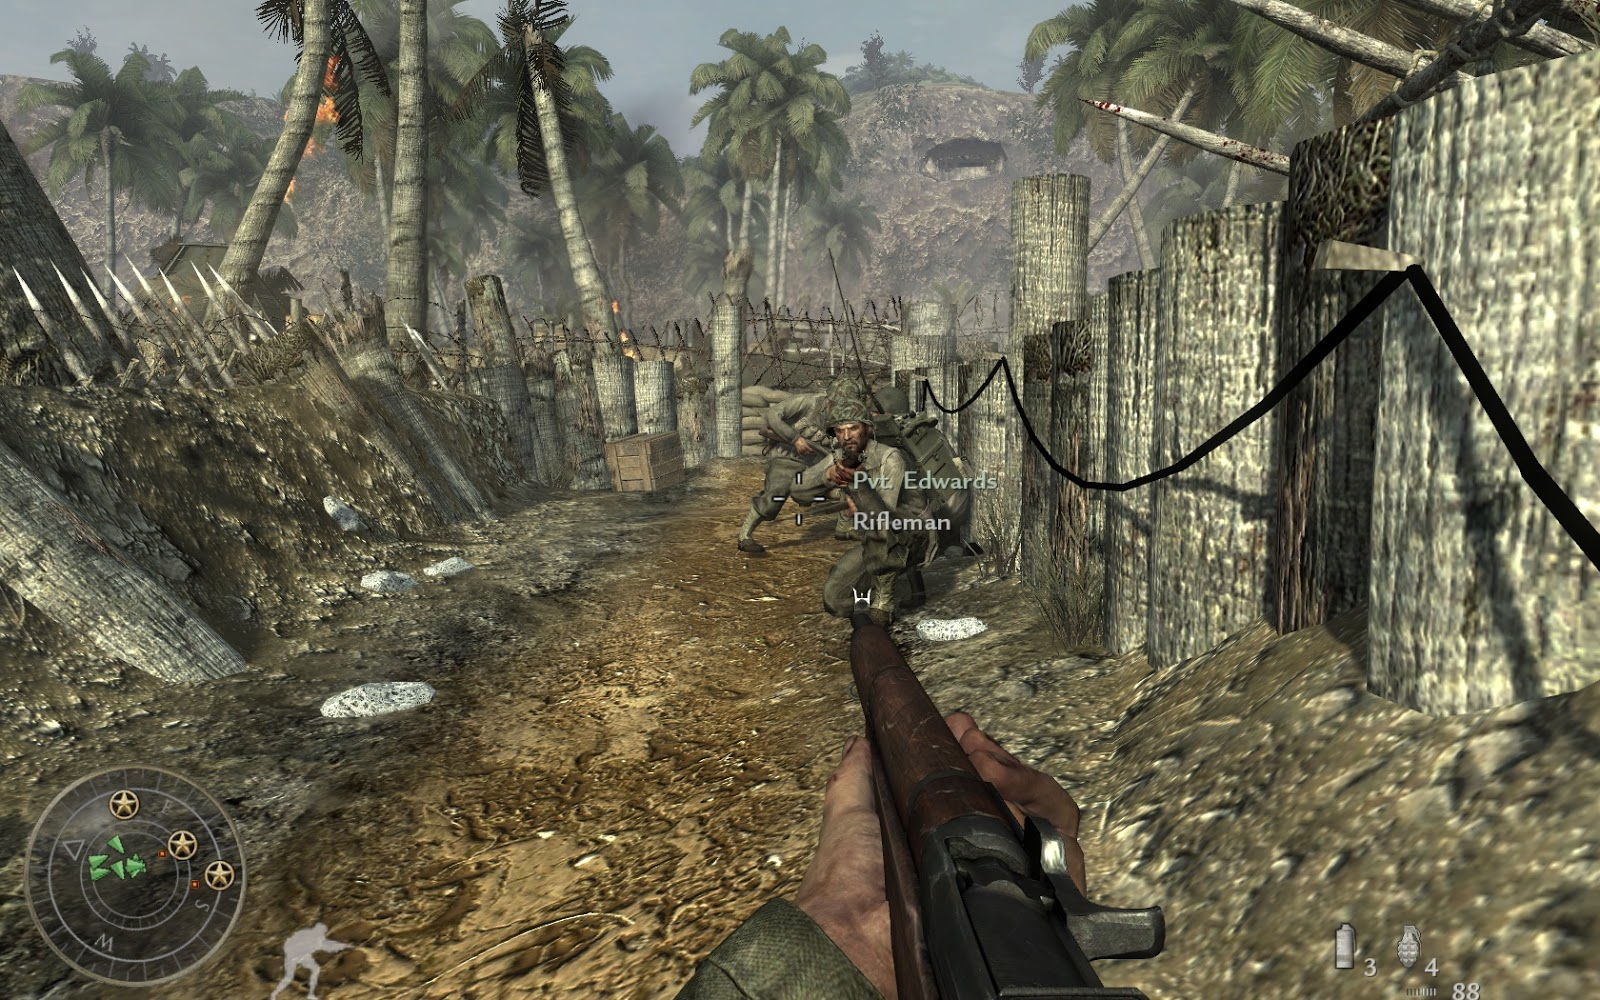 call of duty world at war download free pc game full version